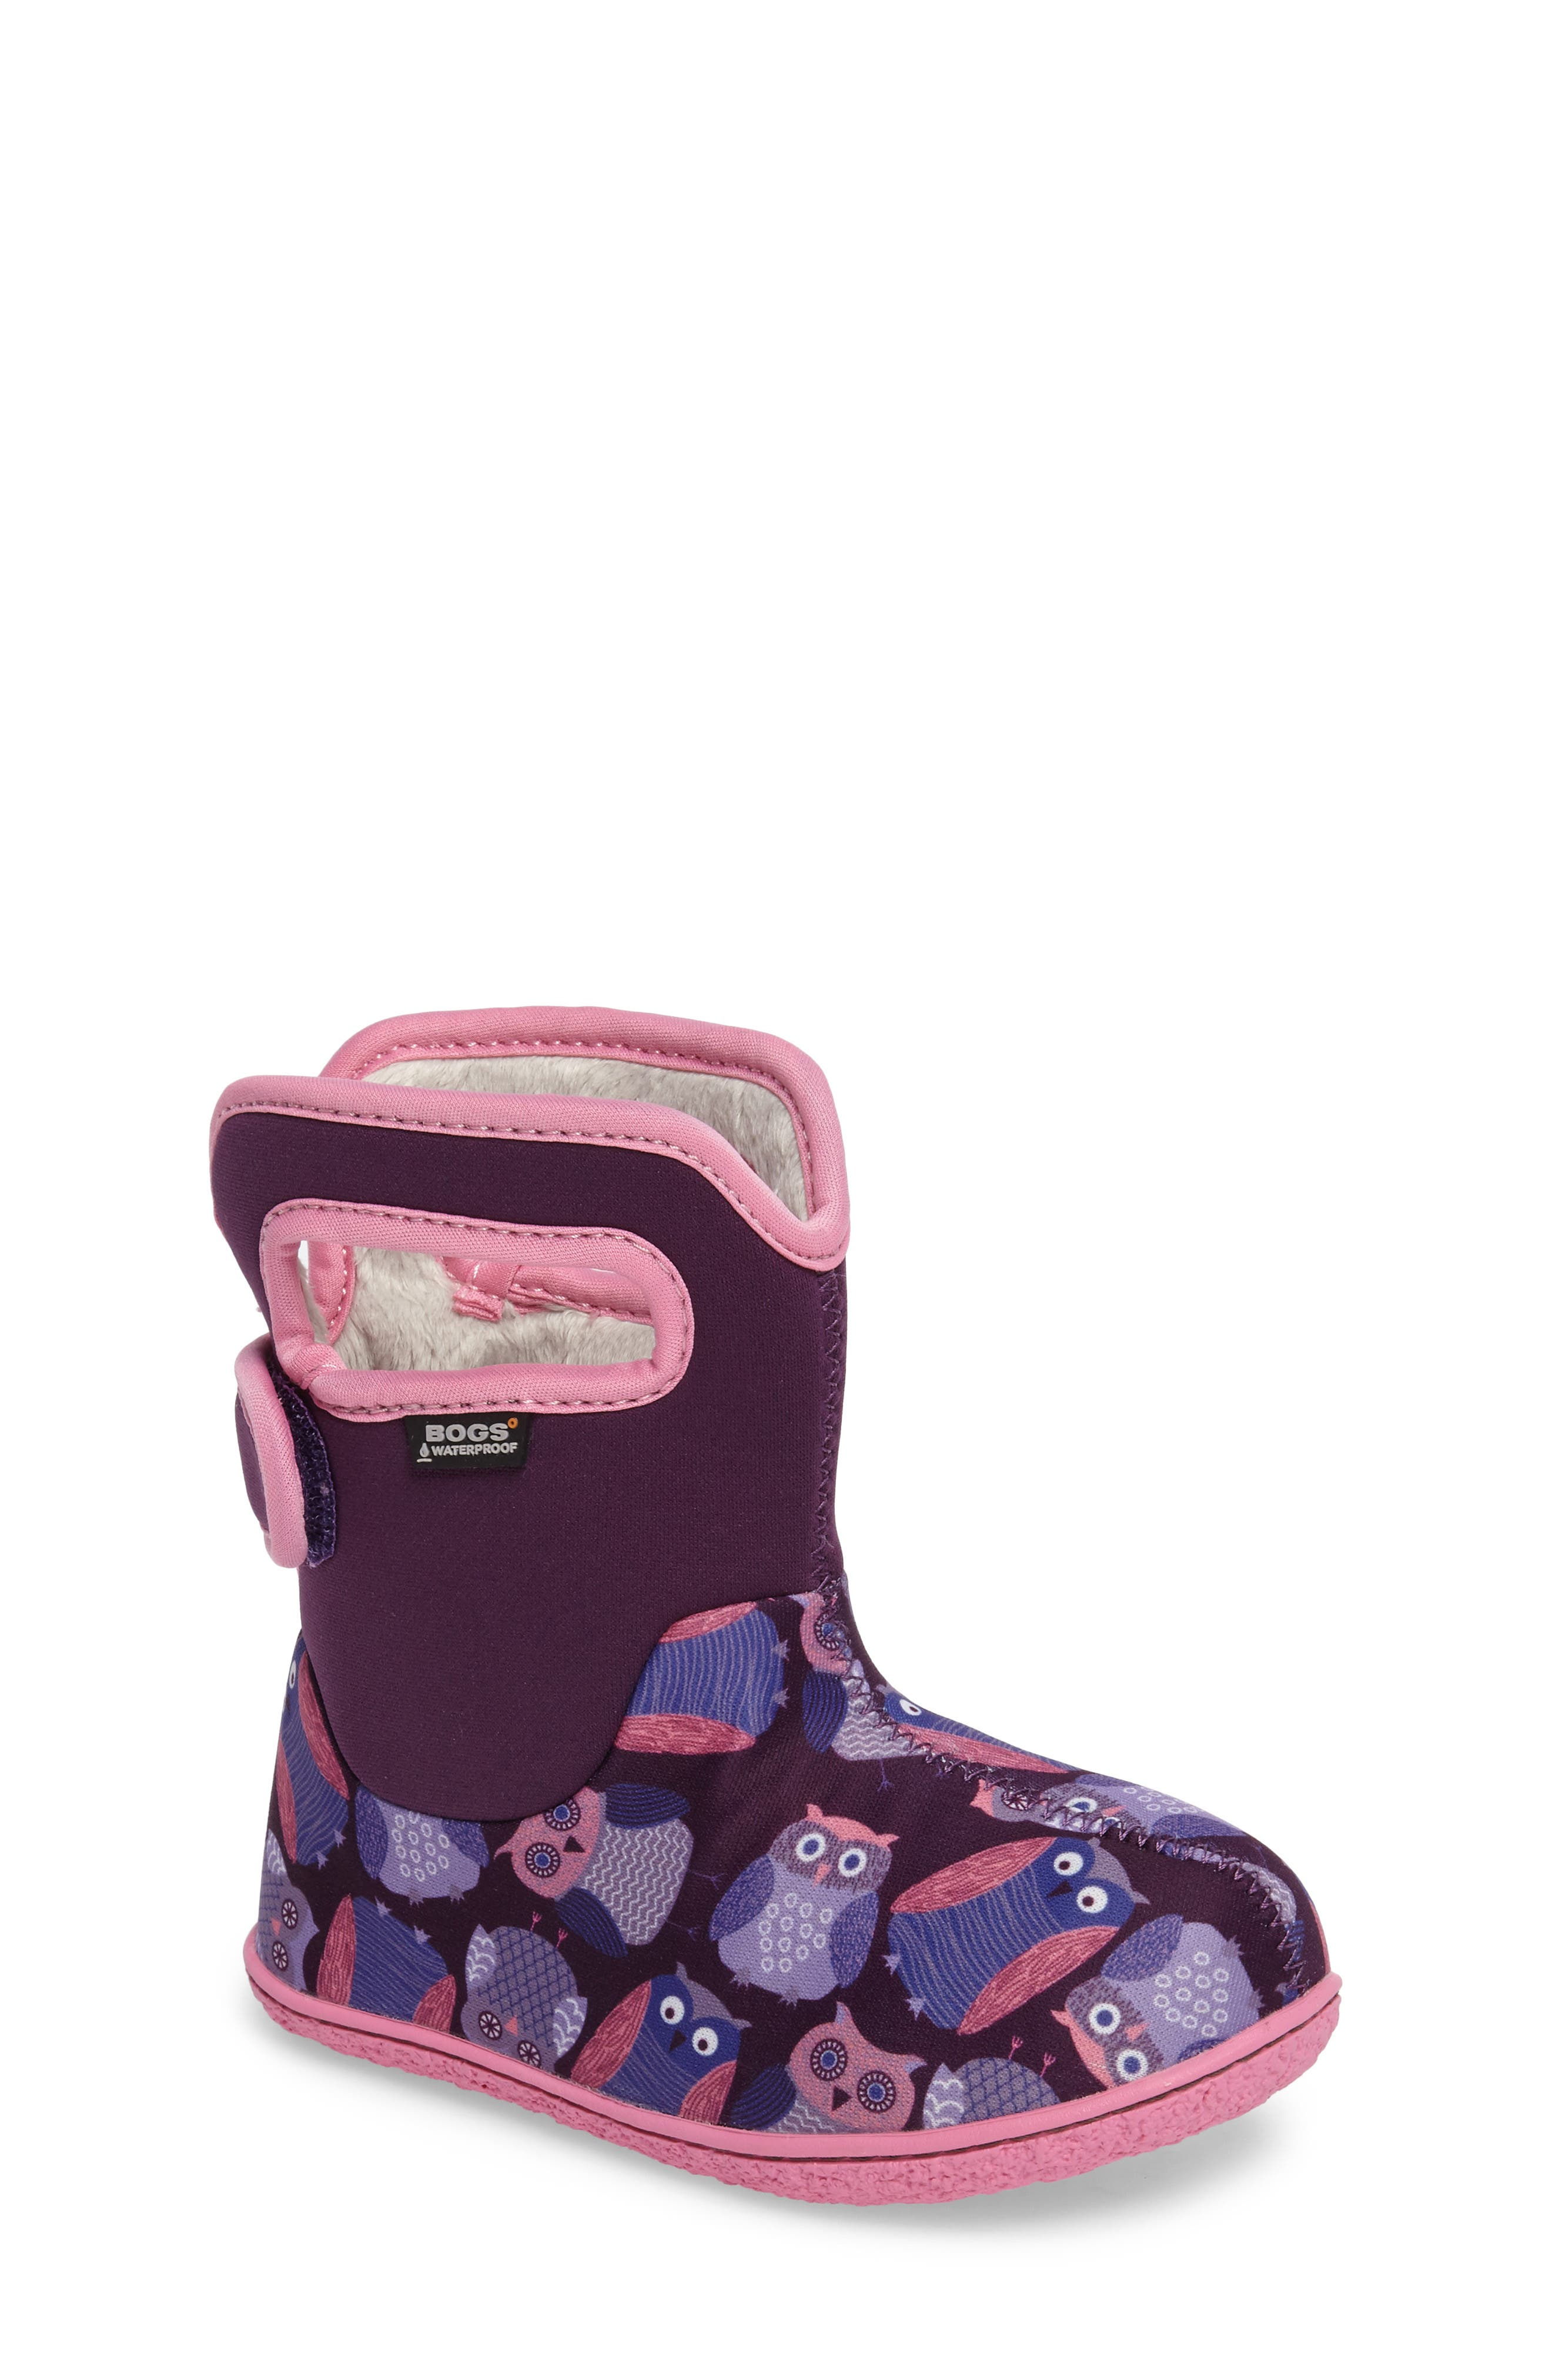 Bogs Baby Bogs Classic Owls Insulated Waterproof Boot (Baby, Walker & Toddler)